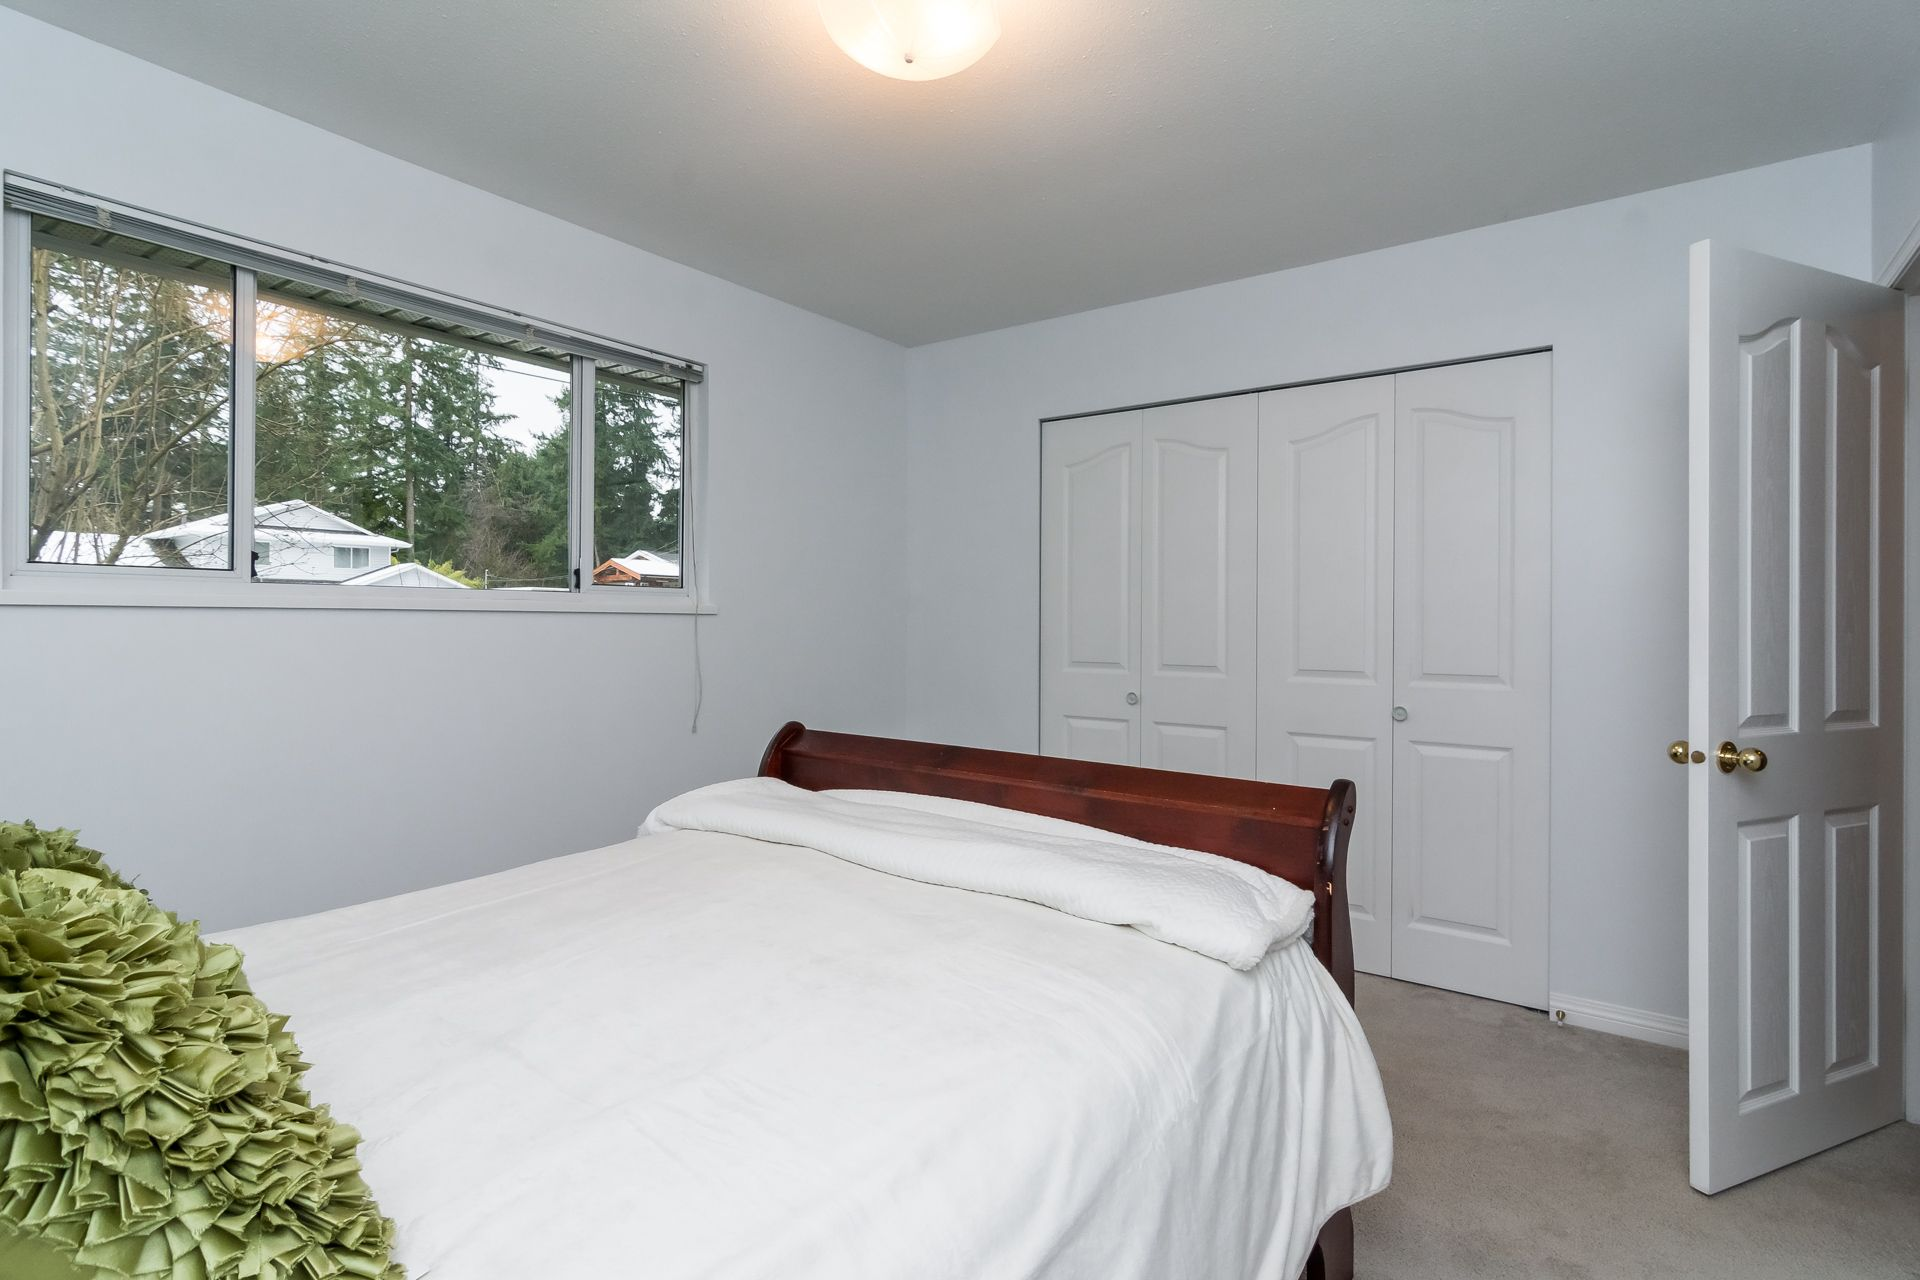 """Photo 21: Photos: 19941 37 Avenue in Langley: Brookswood Langley House for sale in """"Brookswood"""" : MLS®# R2240474"""